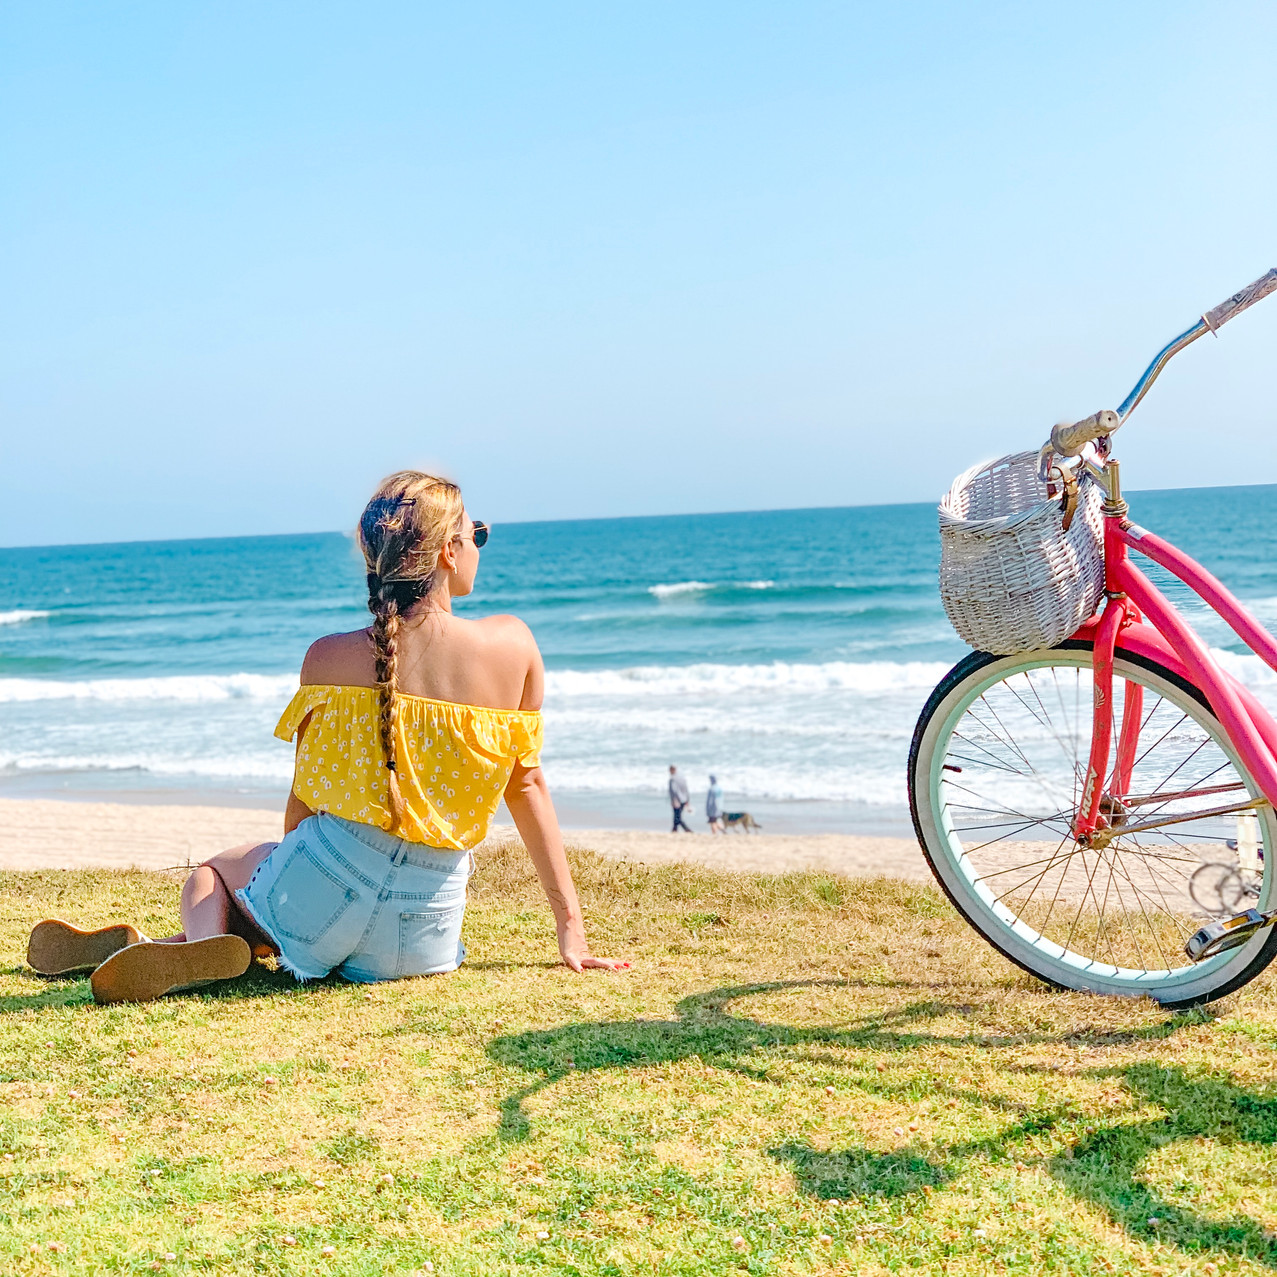 girl sitting on the lawn overlooking the ocean next to a pink bicycle